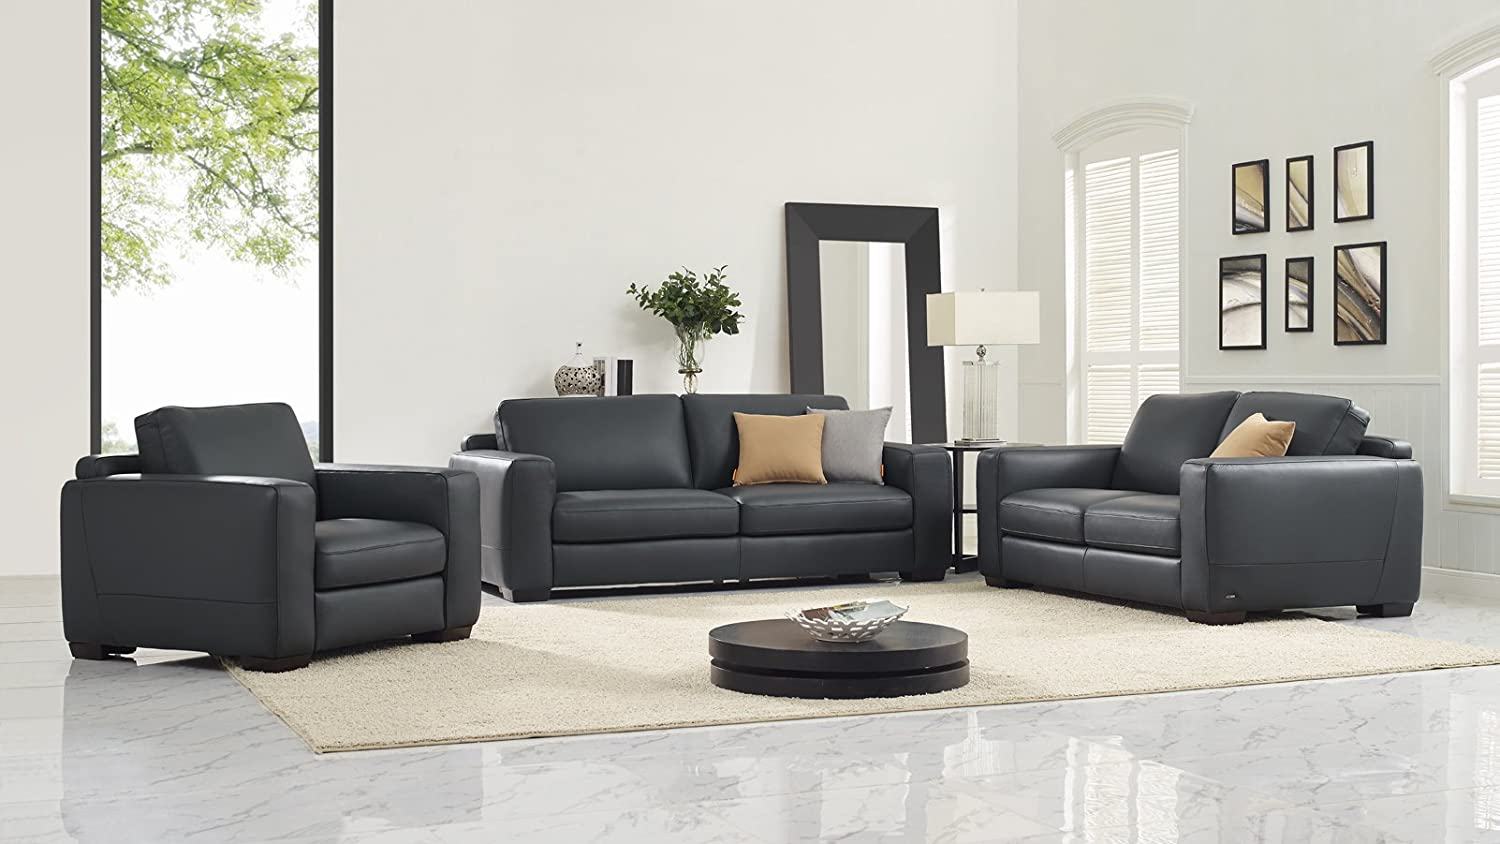 Review For Natuzzi Sofa Loveseat Charming Home Design